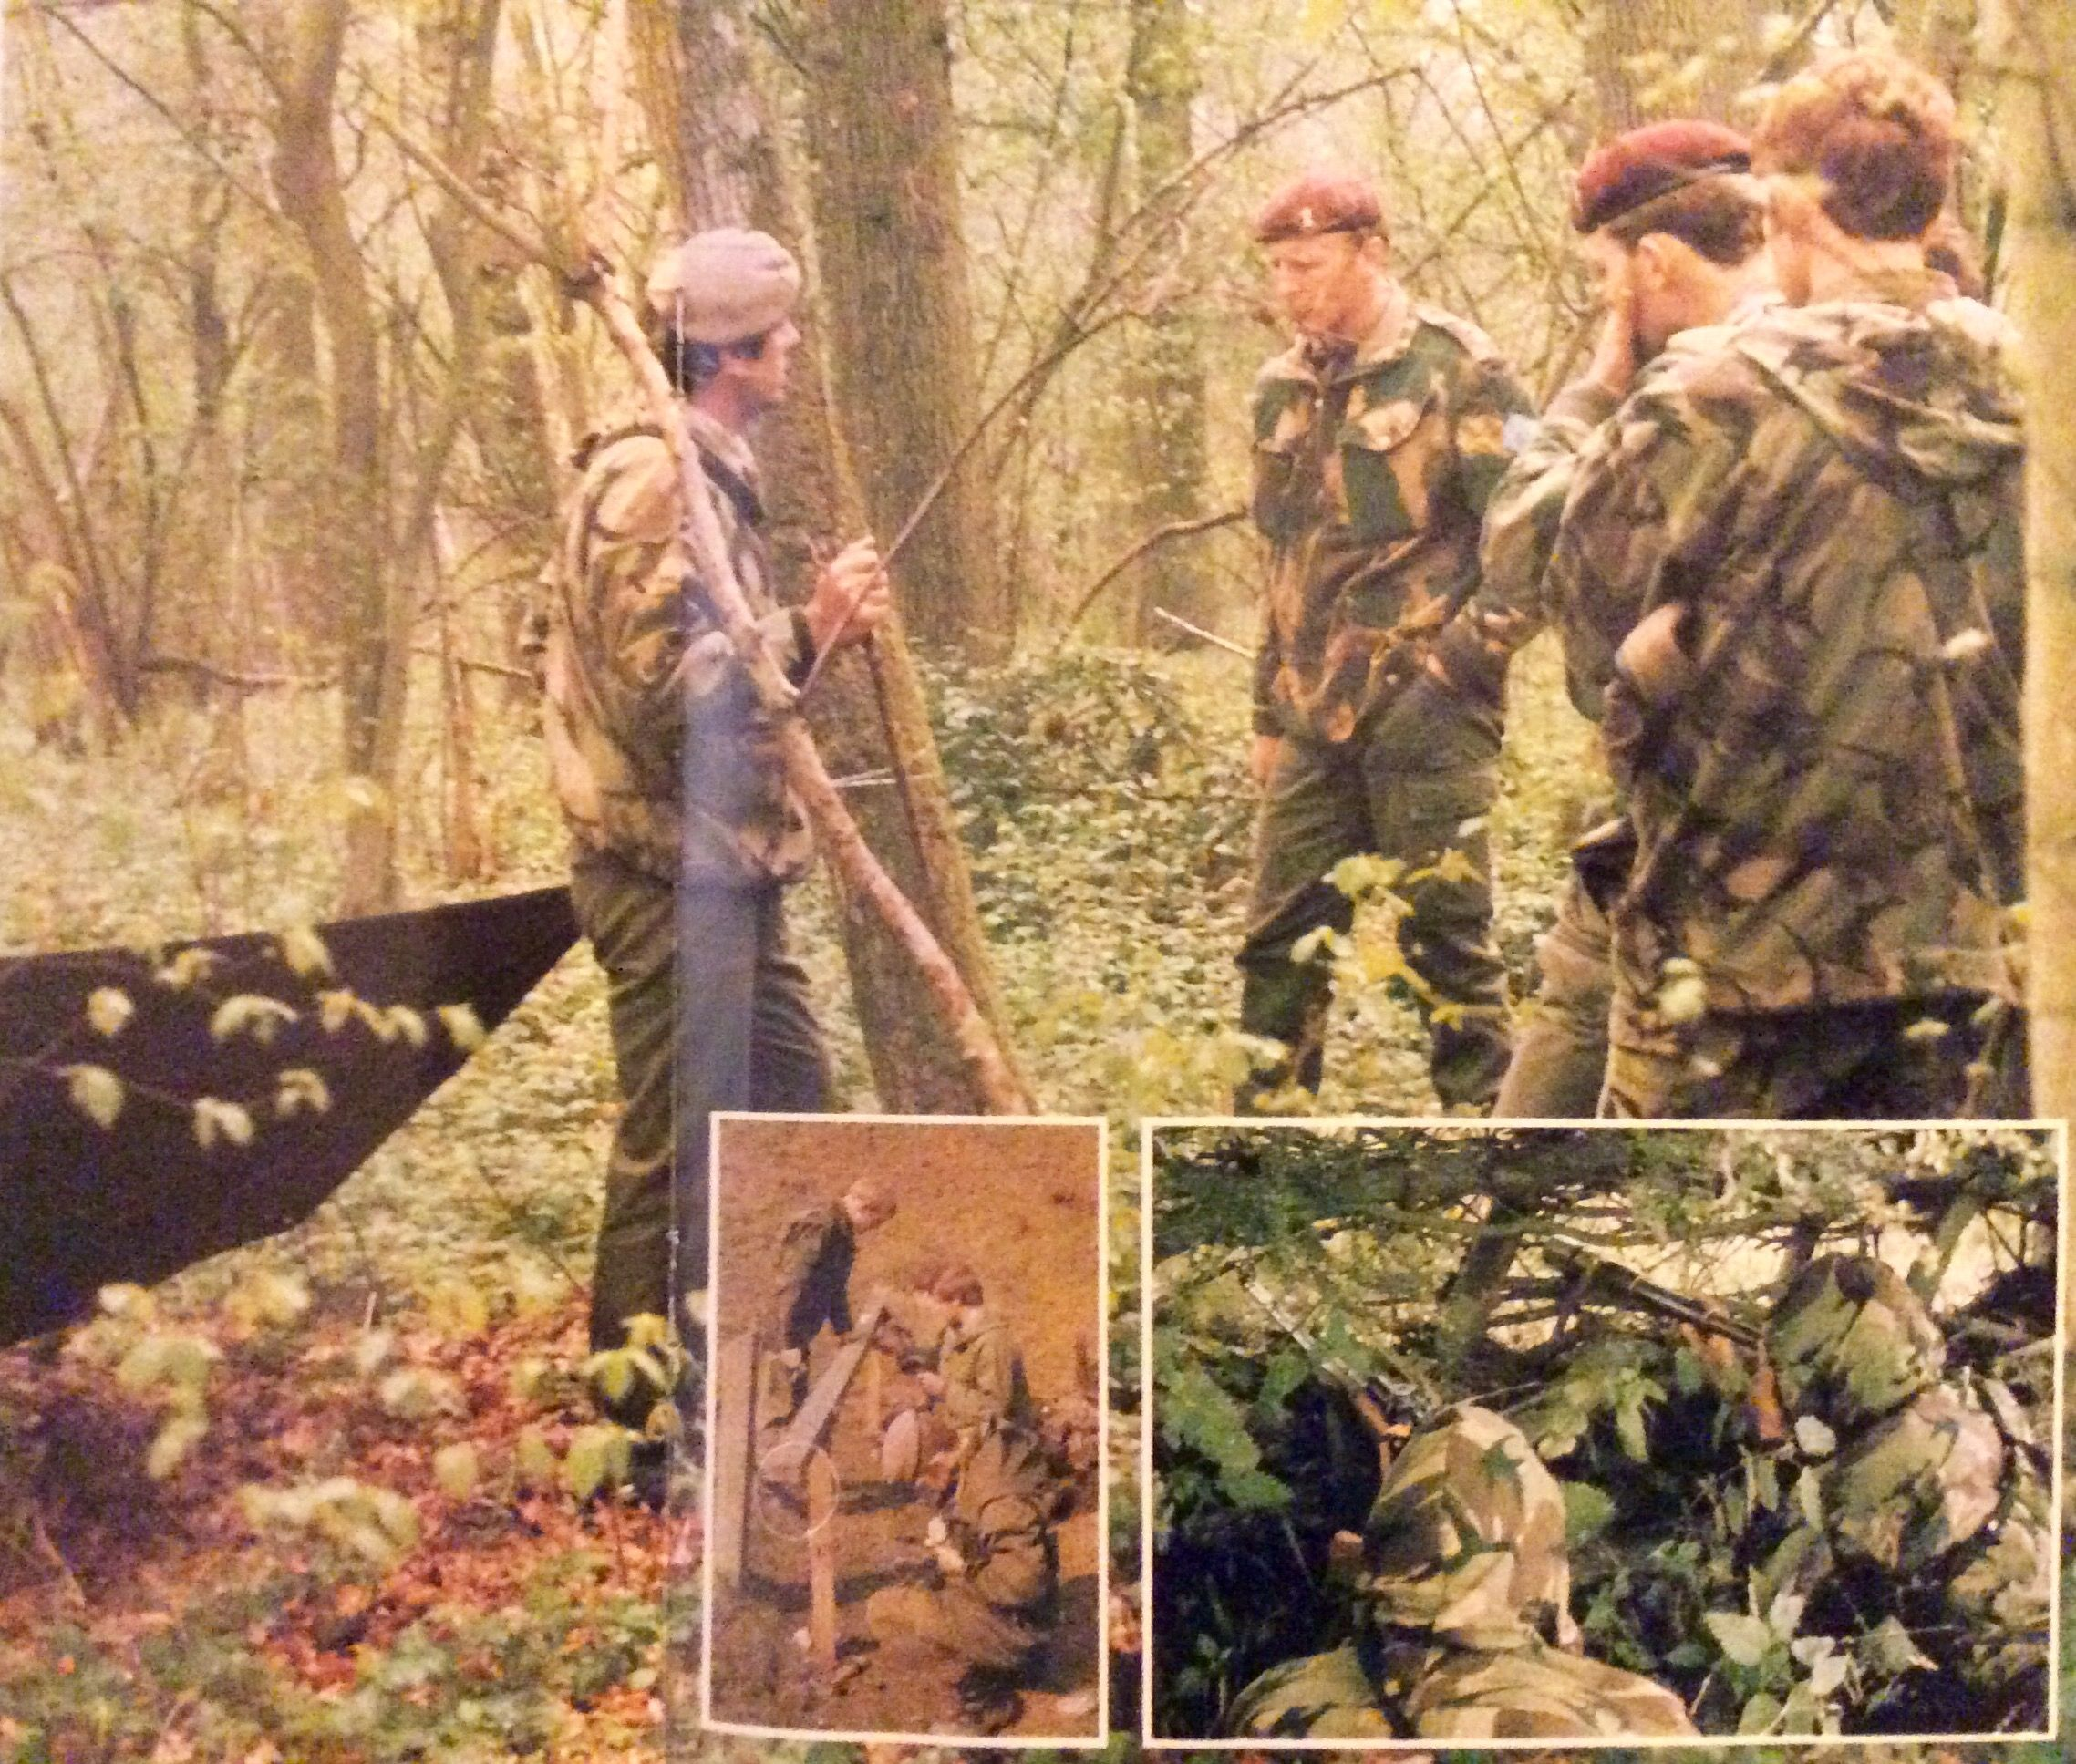 22 SAS Regiment continuation training phase during selection course late  1970s. | Special forces, British armed forces, Special air service